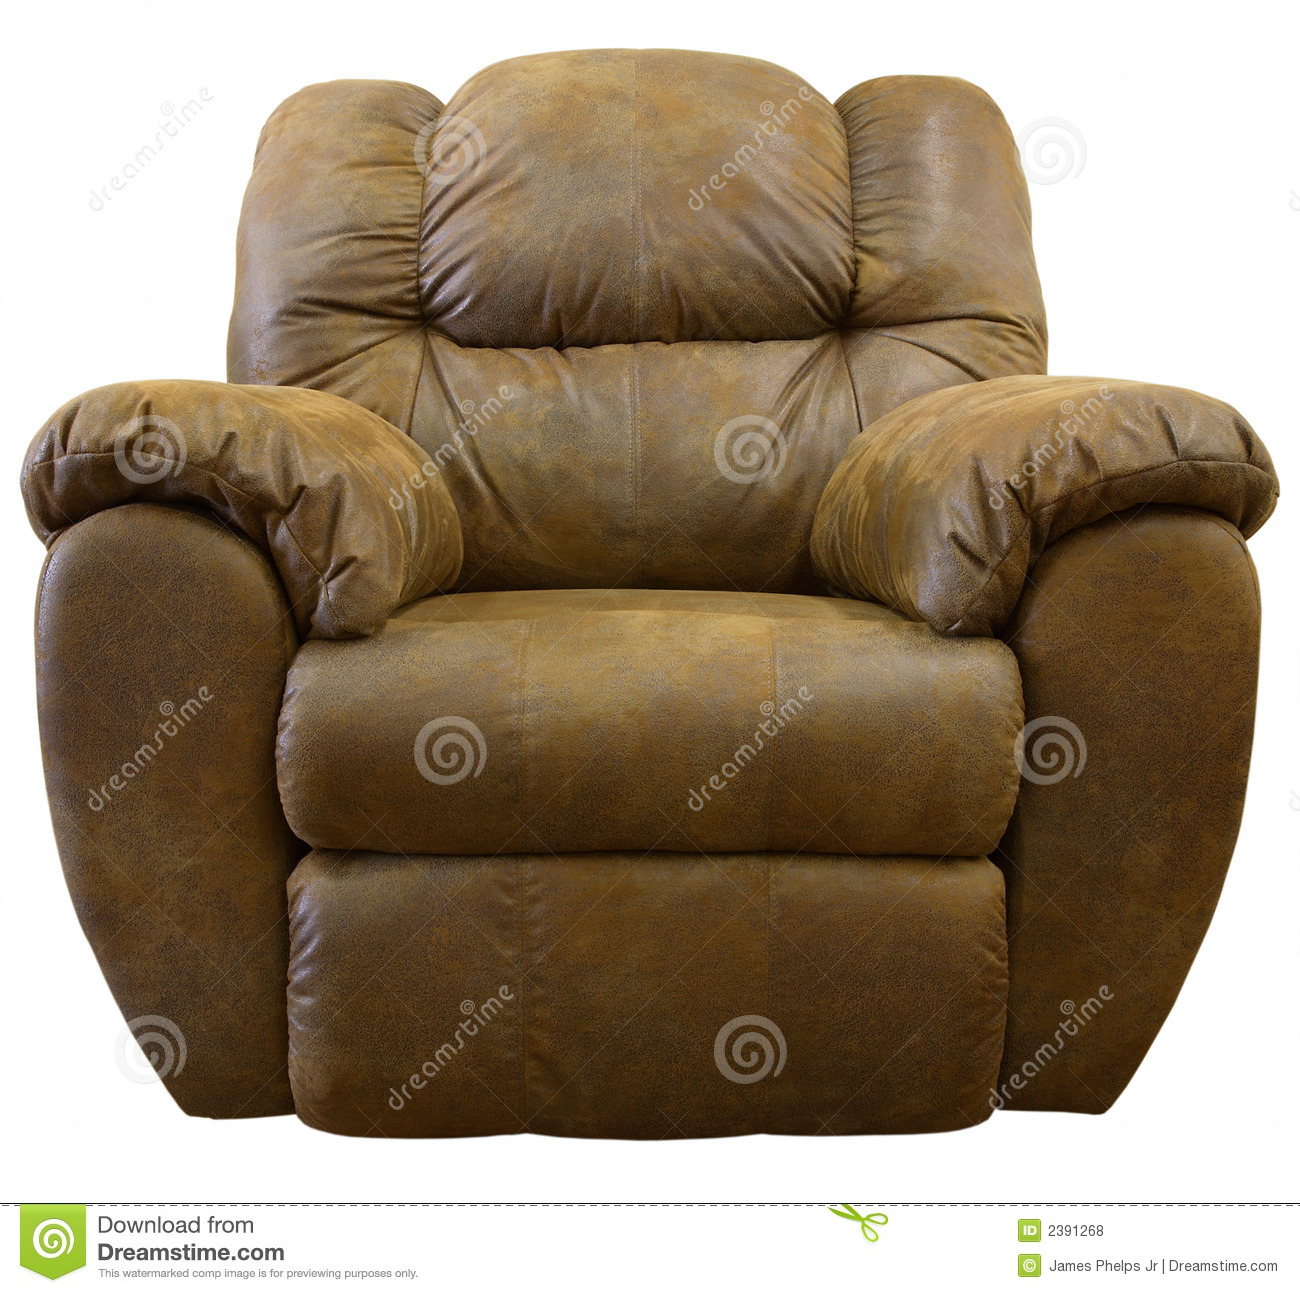 Awesome Micro Suede Rocker Recliner Stock Photo Image Of Design Machost Co Dining Chair Design Ideas Machostcouk